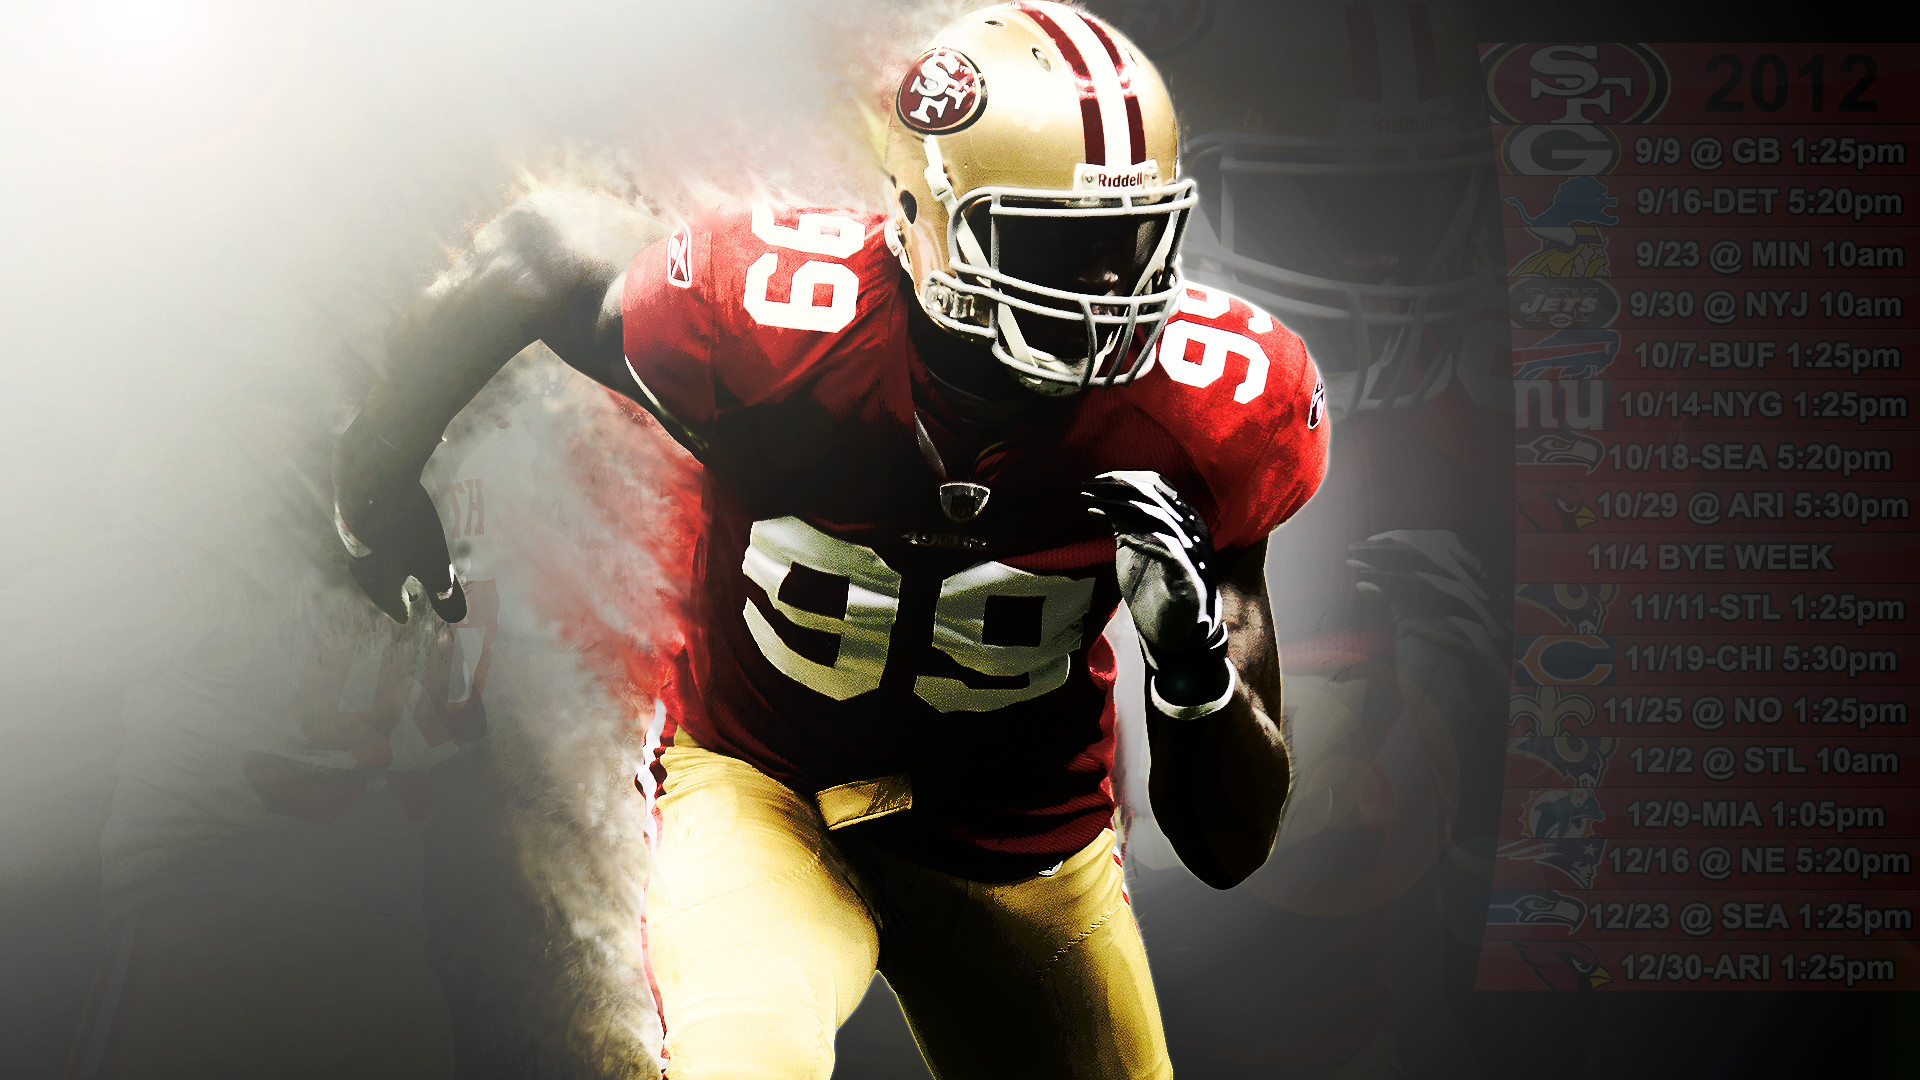 1920x1080 49ers schedule Wallpaper Aldon Smith 1 (PST) by SanFran49er.